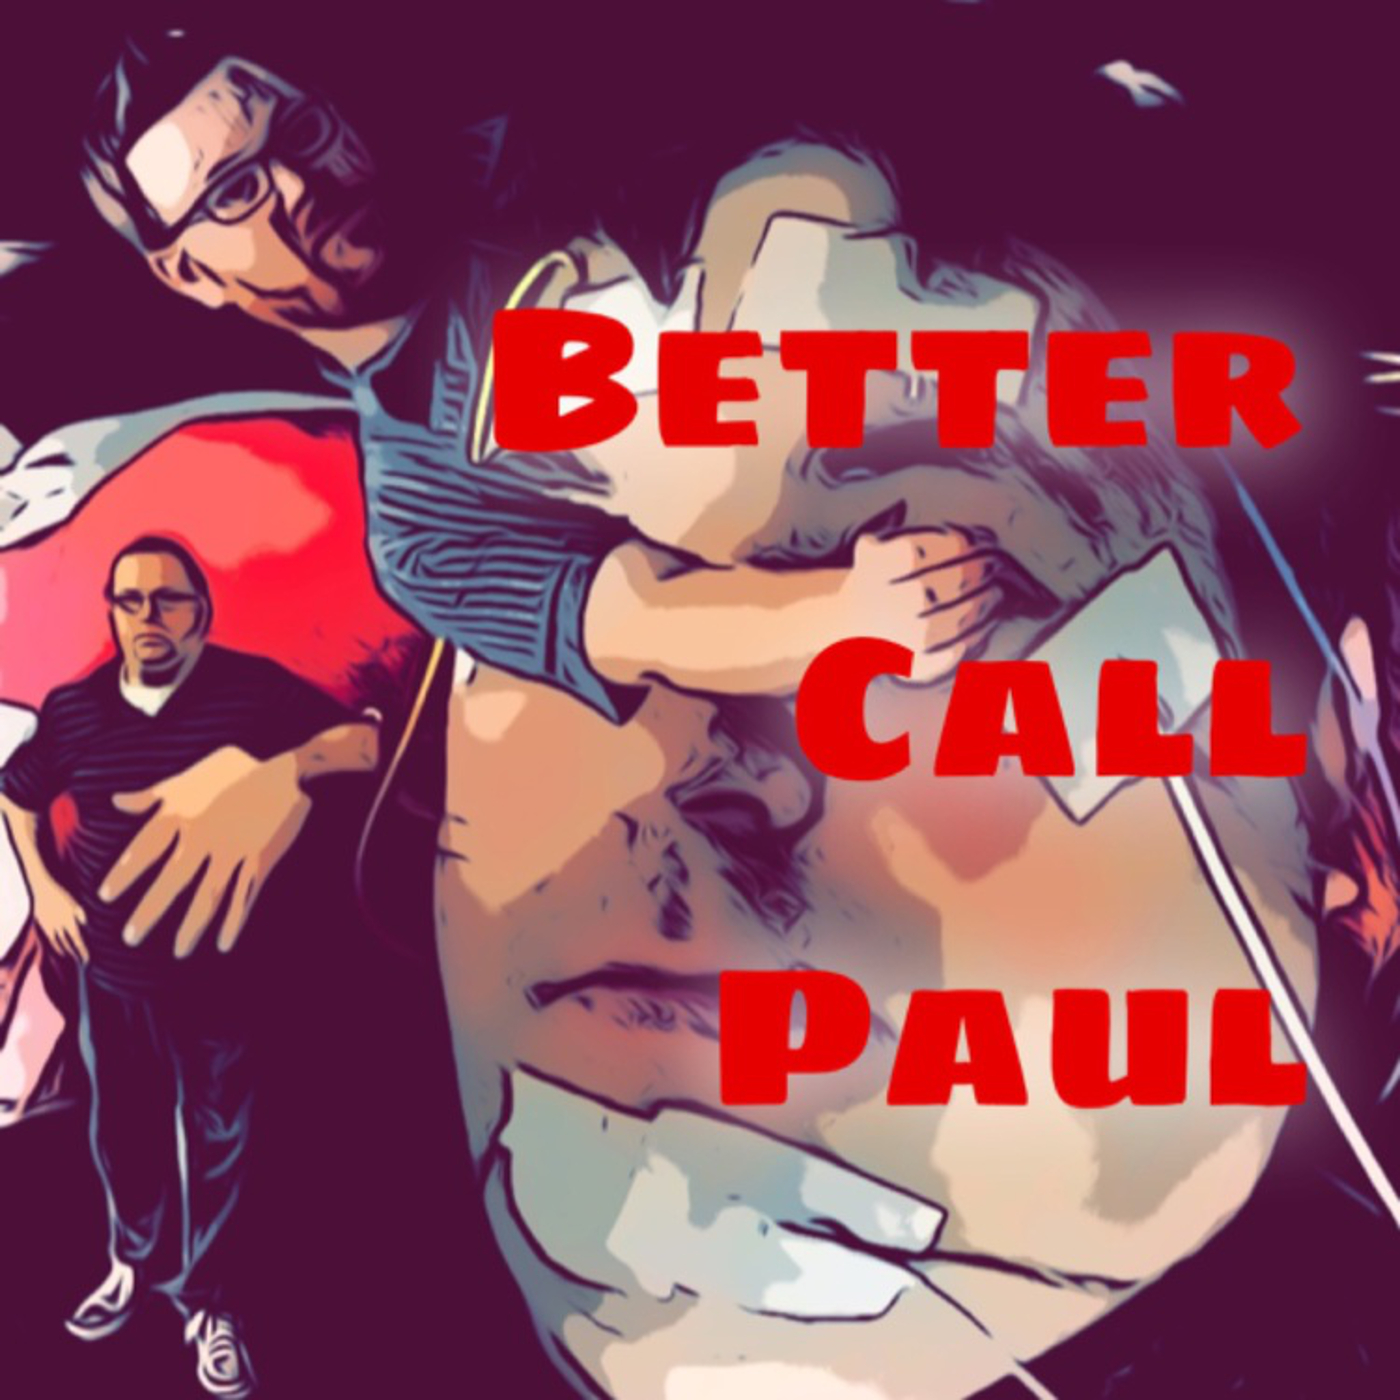 Better Call Paul - TMDOTPBM Enterprises